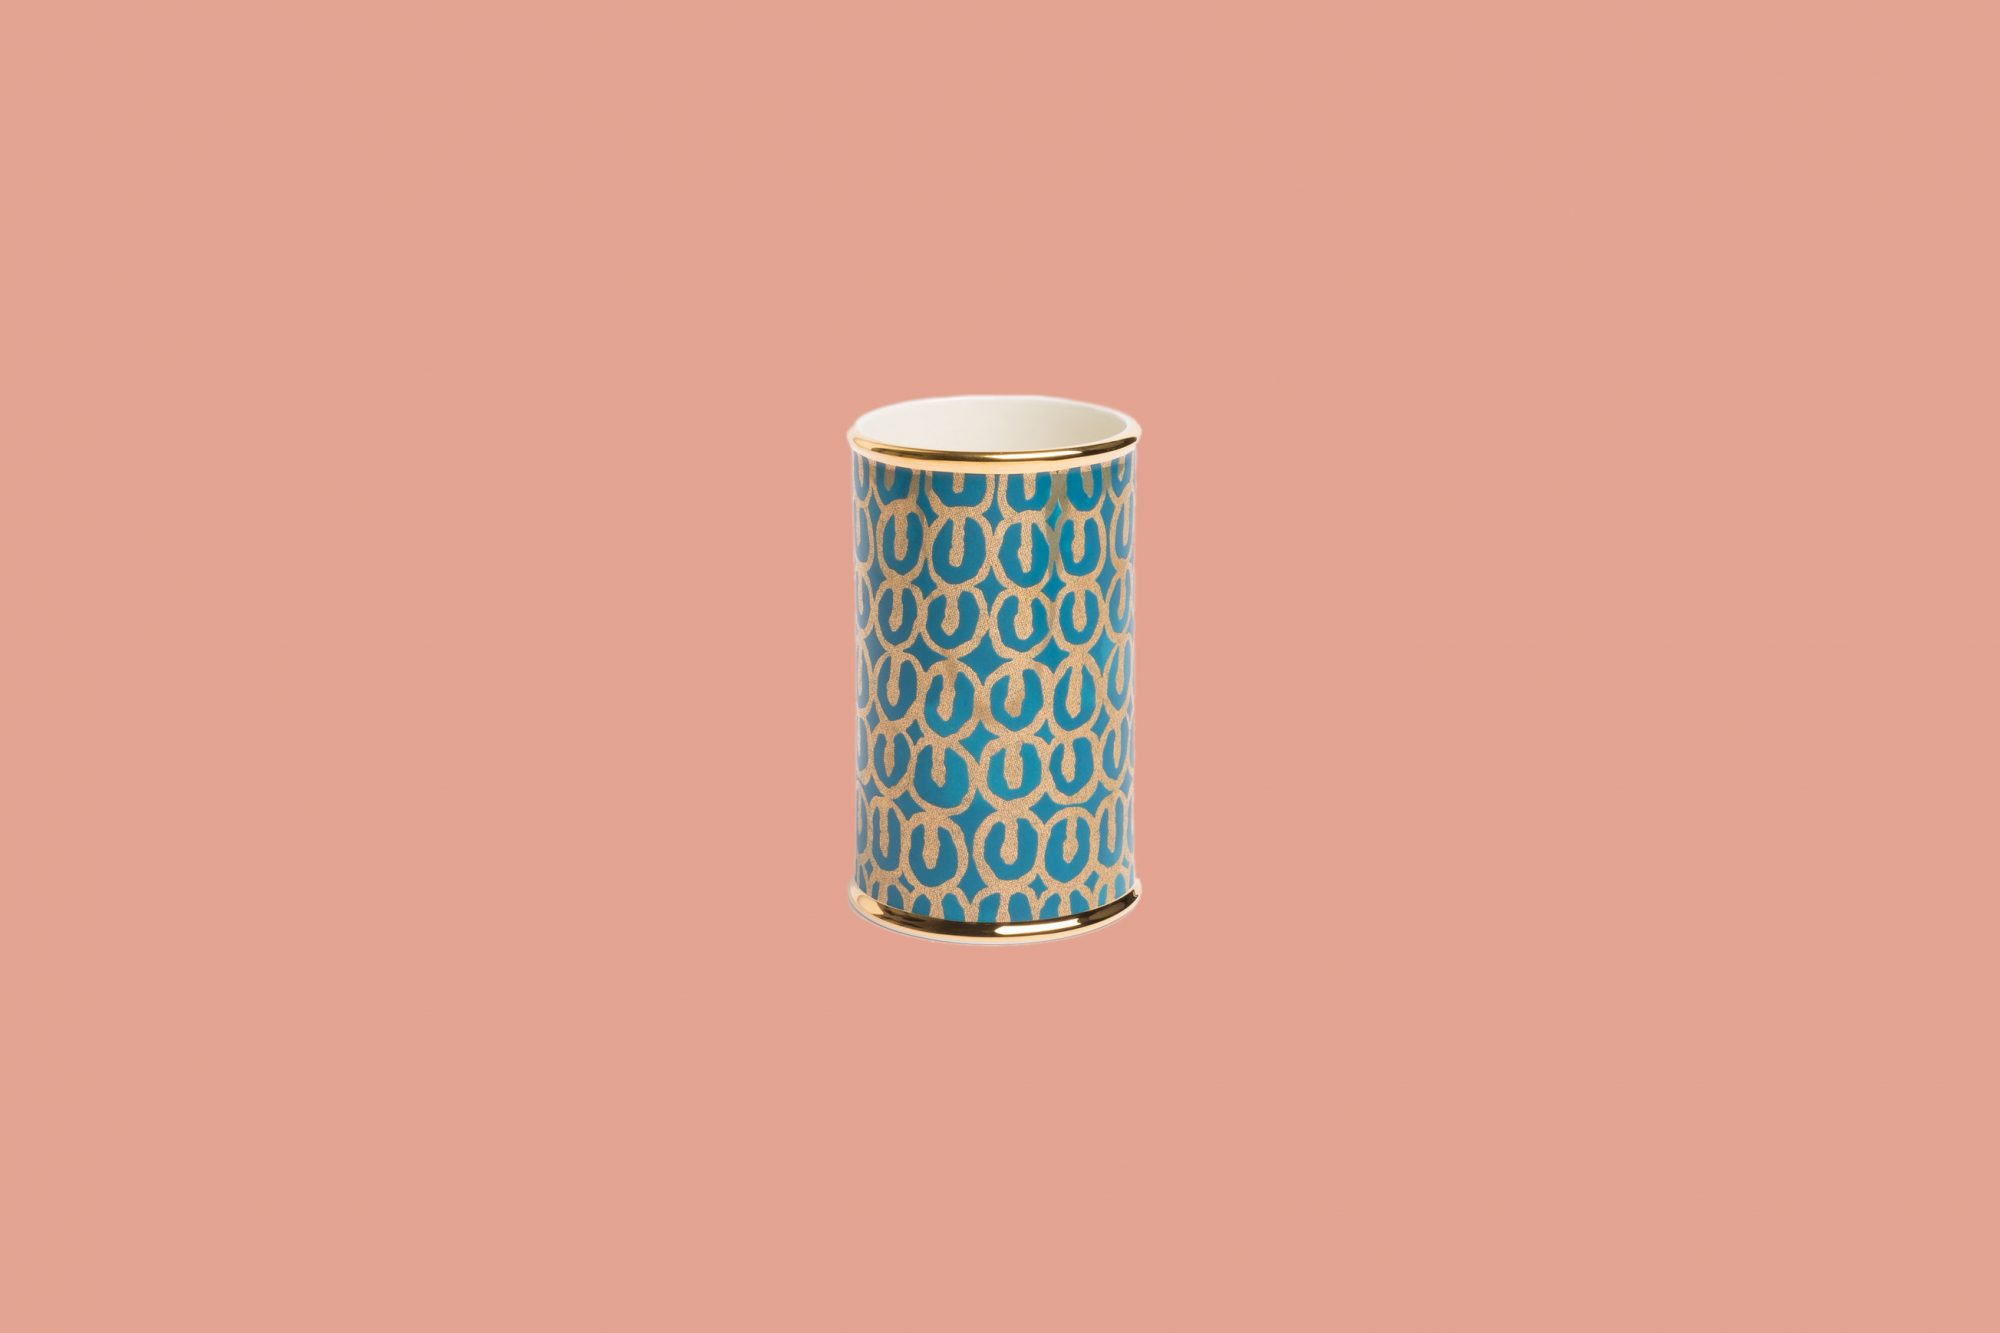 Teal and Gold Vase